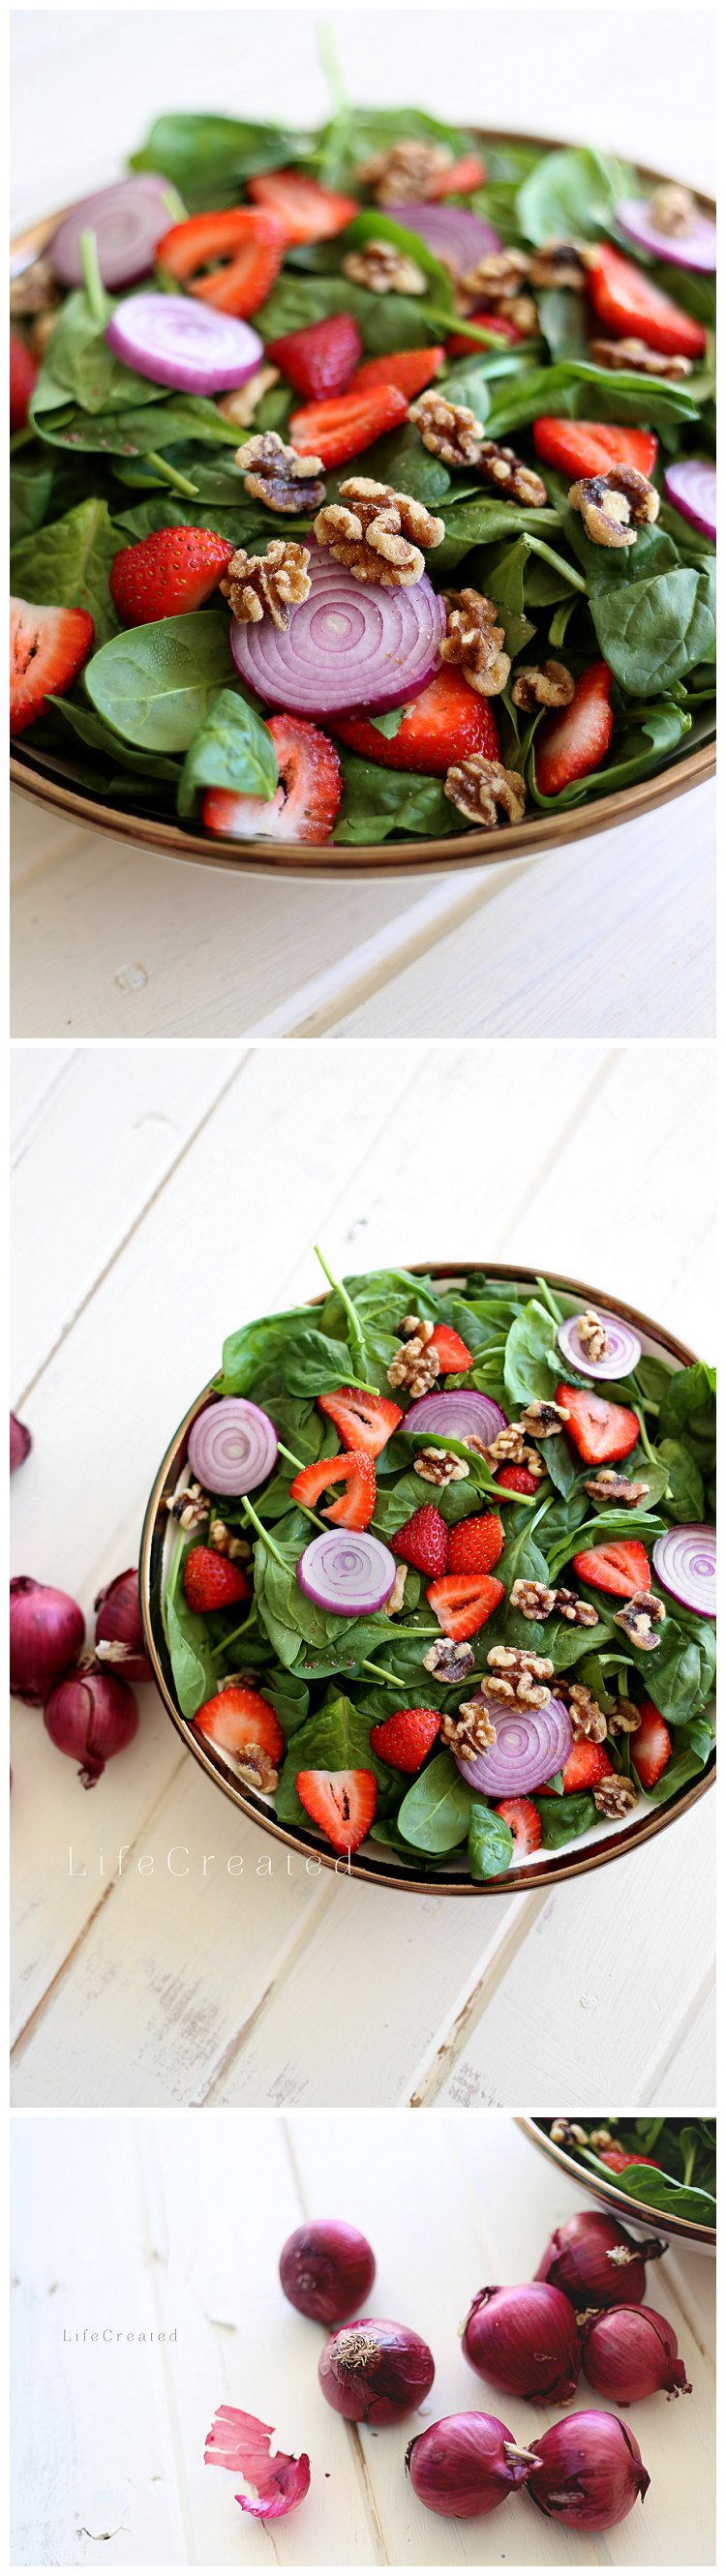 Food Photography; salad